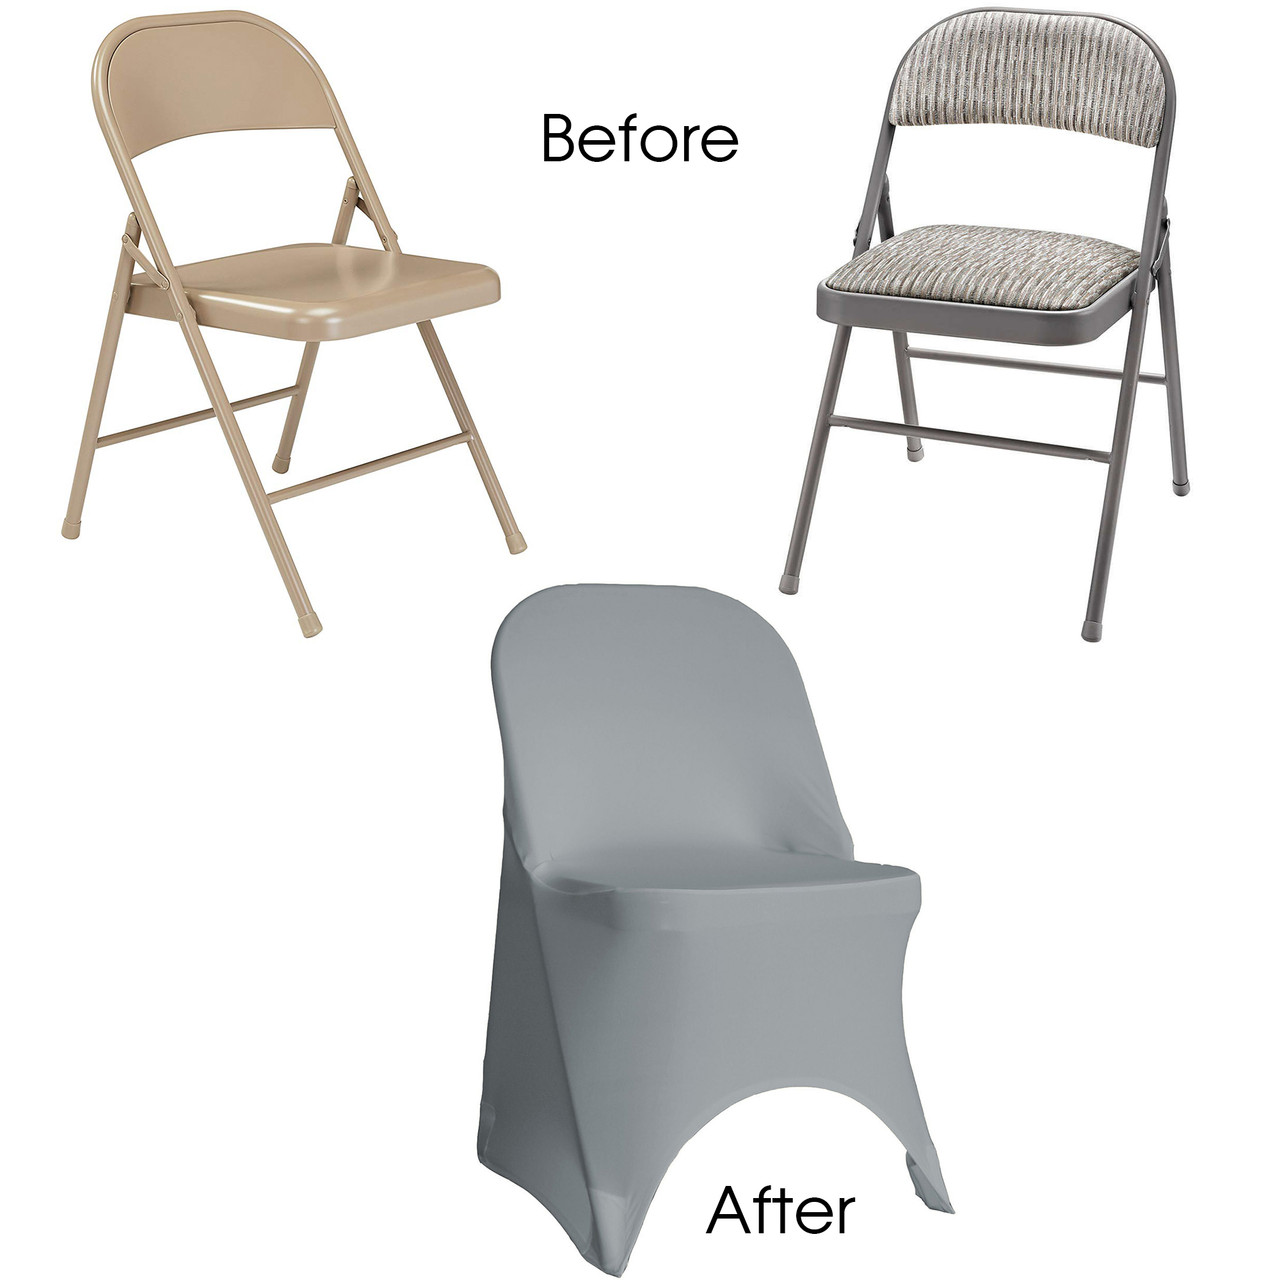 Stretch Spandex Folding Chair Cover Gray Your Chair Covers Inc